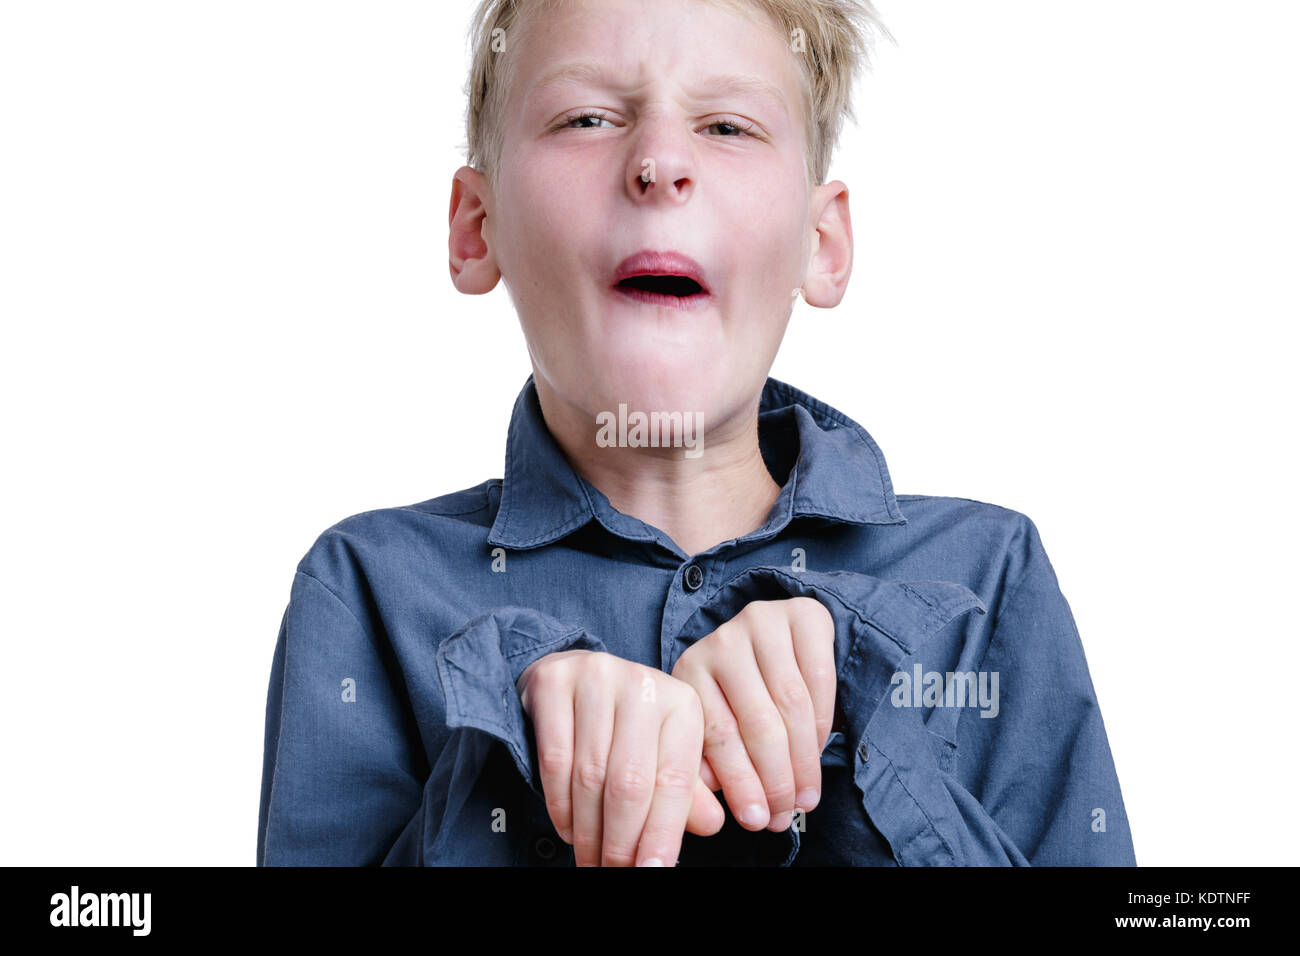 10-years old boy making a face - Stock Image